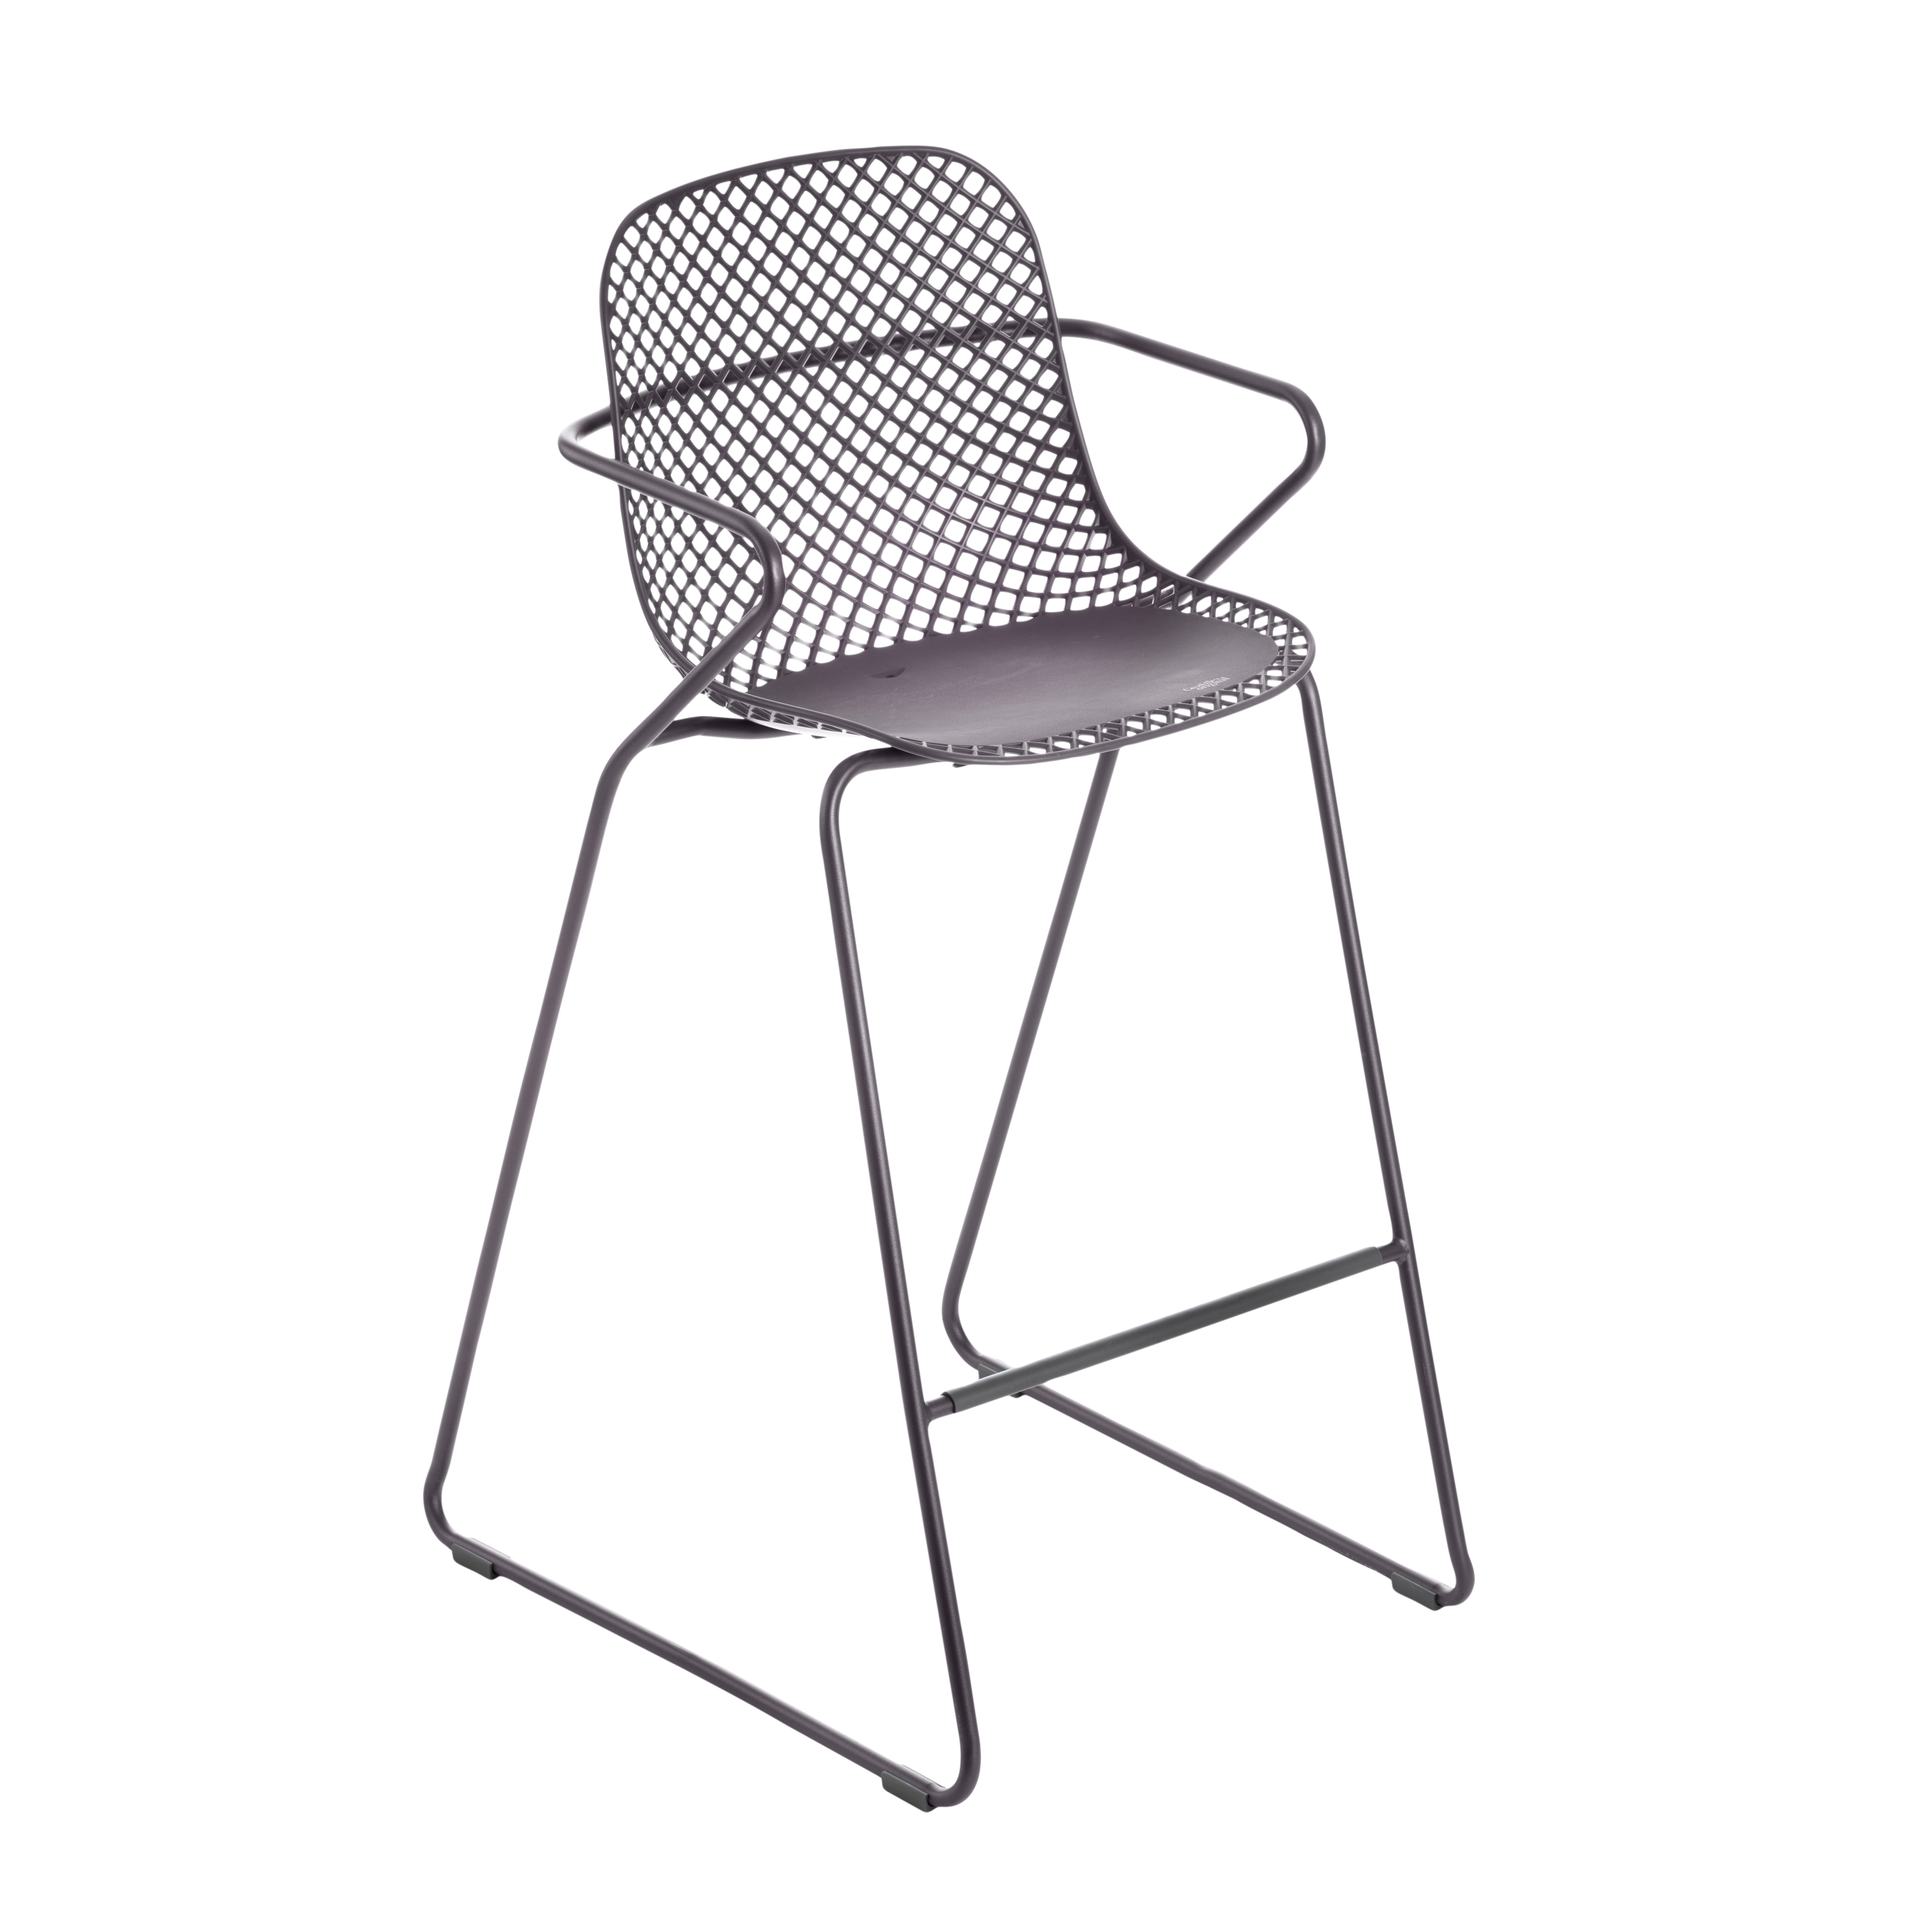 Grosfillex US139713 bar stool, stacking, outdoor